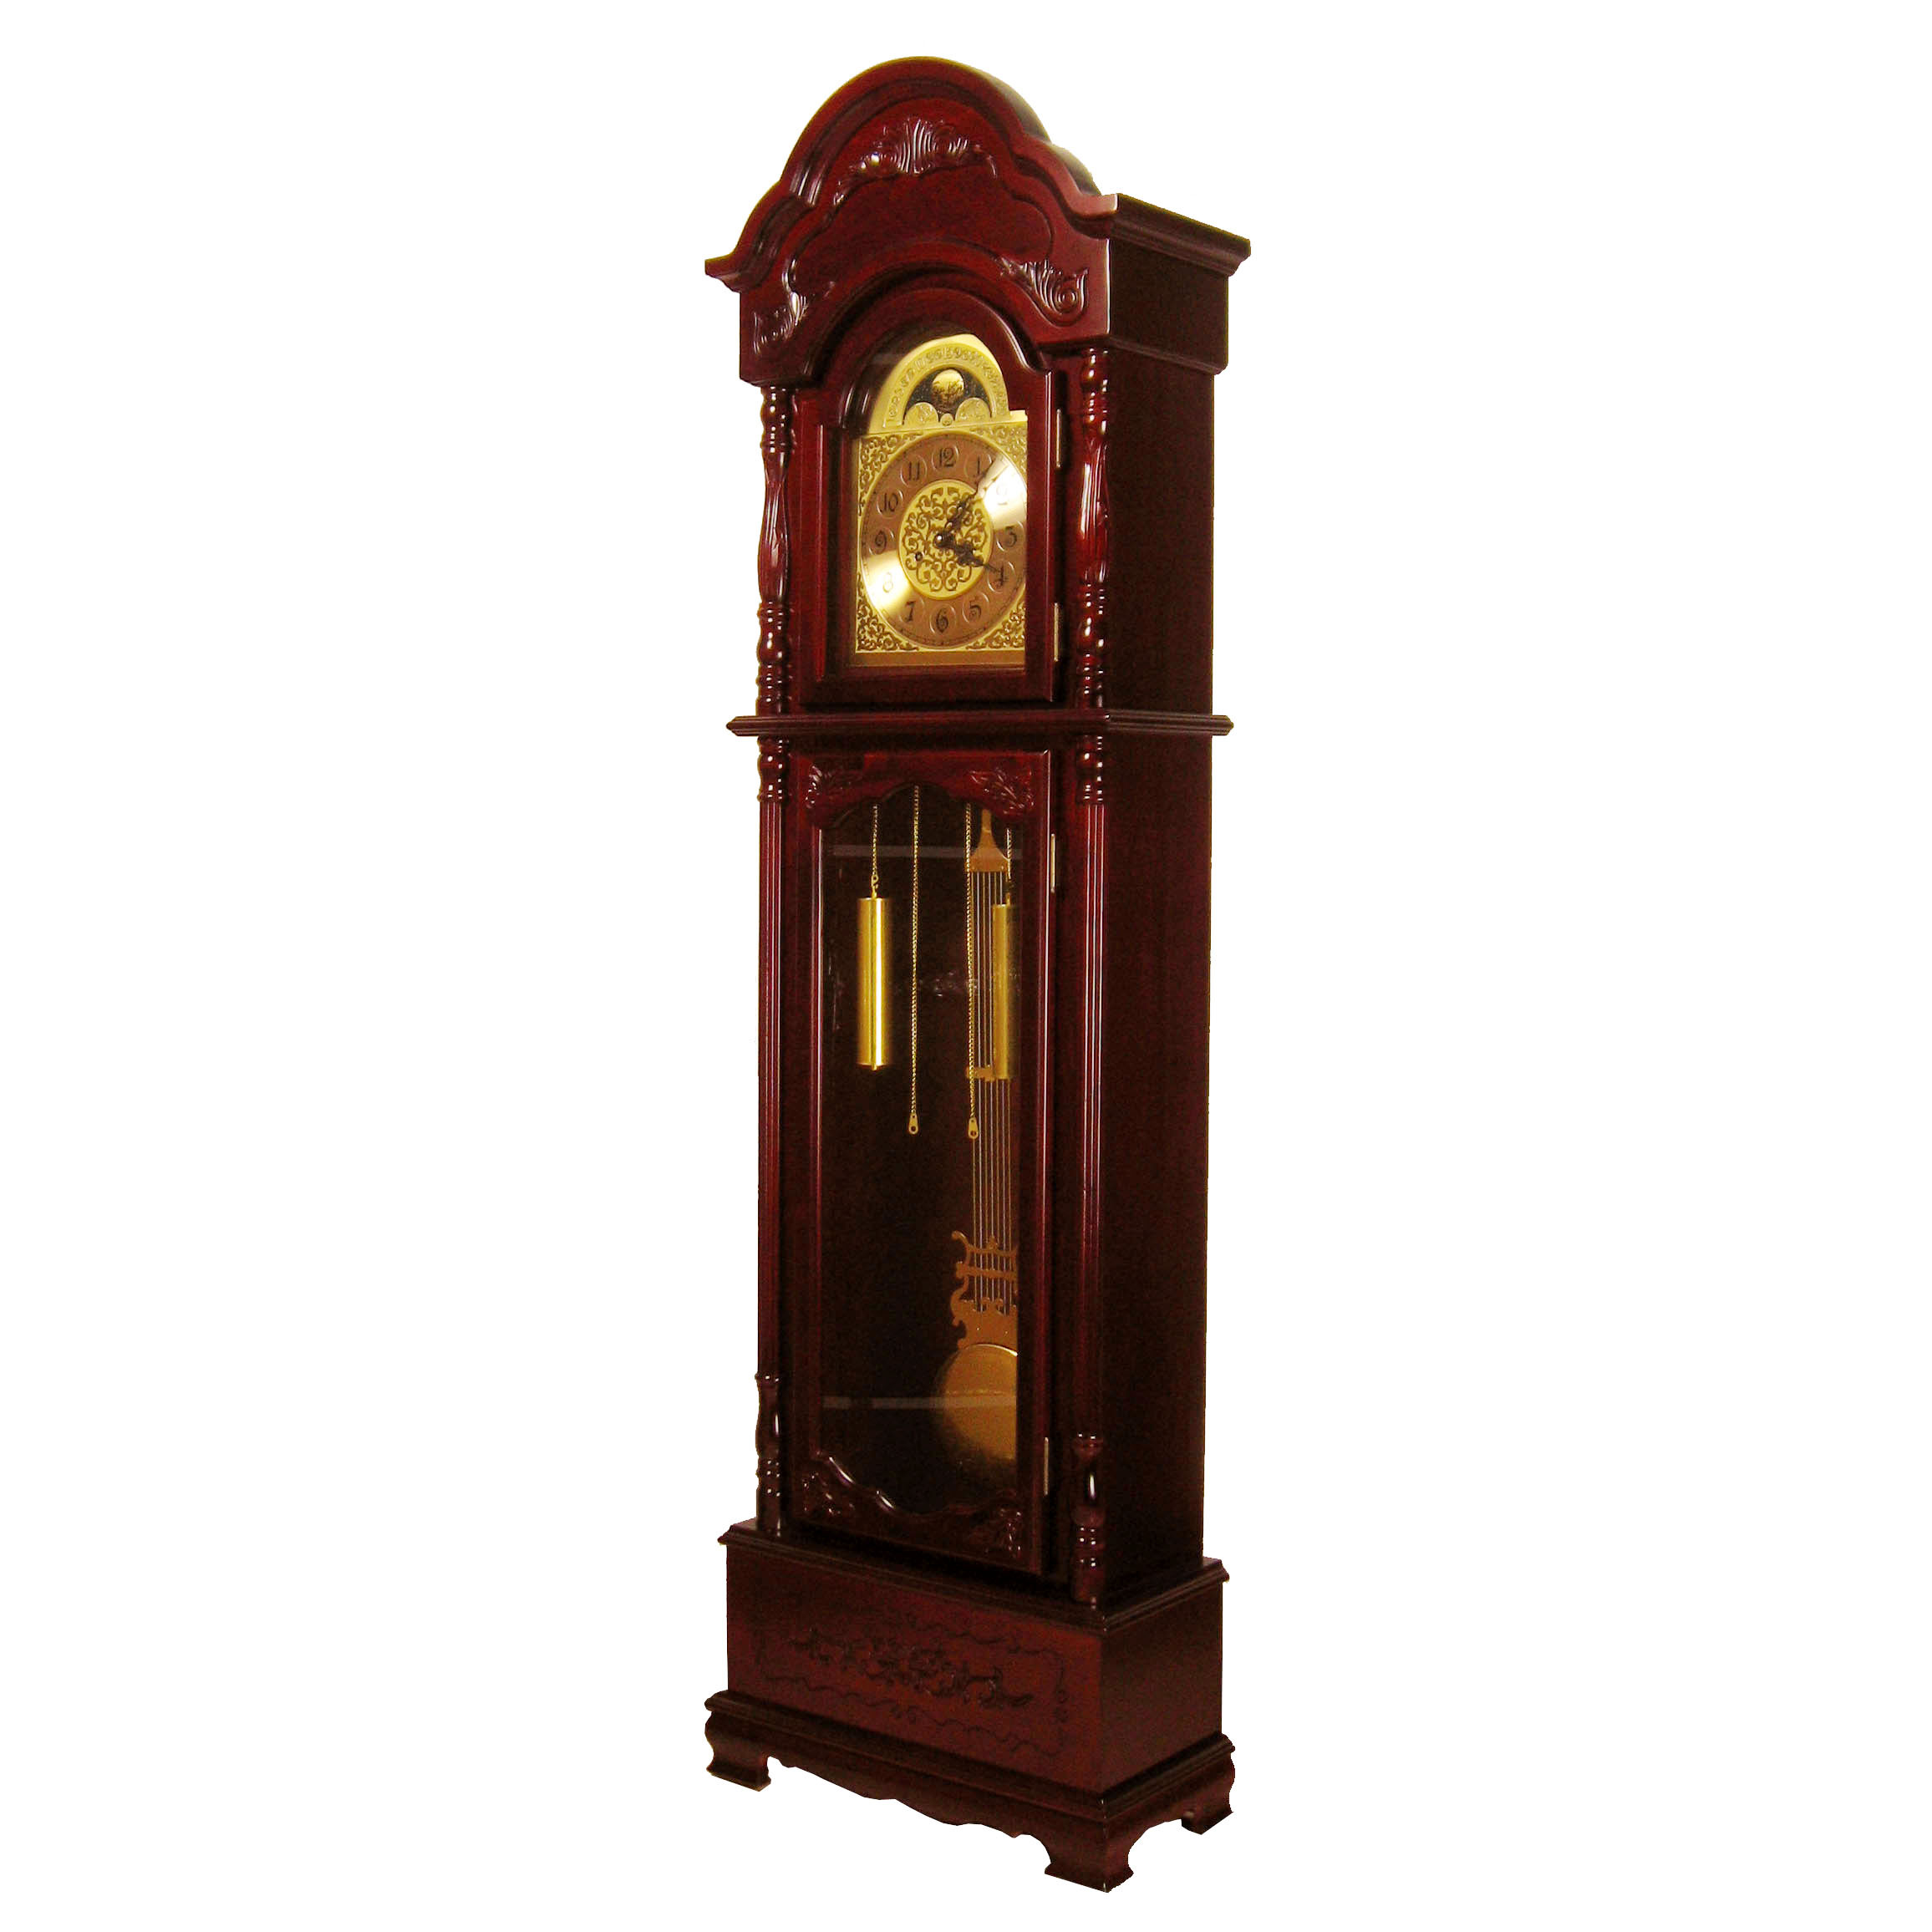 European grandfather clock/living room floor clock/mechanical manufacturing pendulum swing/wood hand carved work floor clock